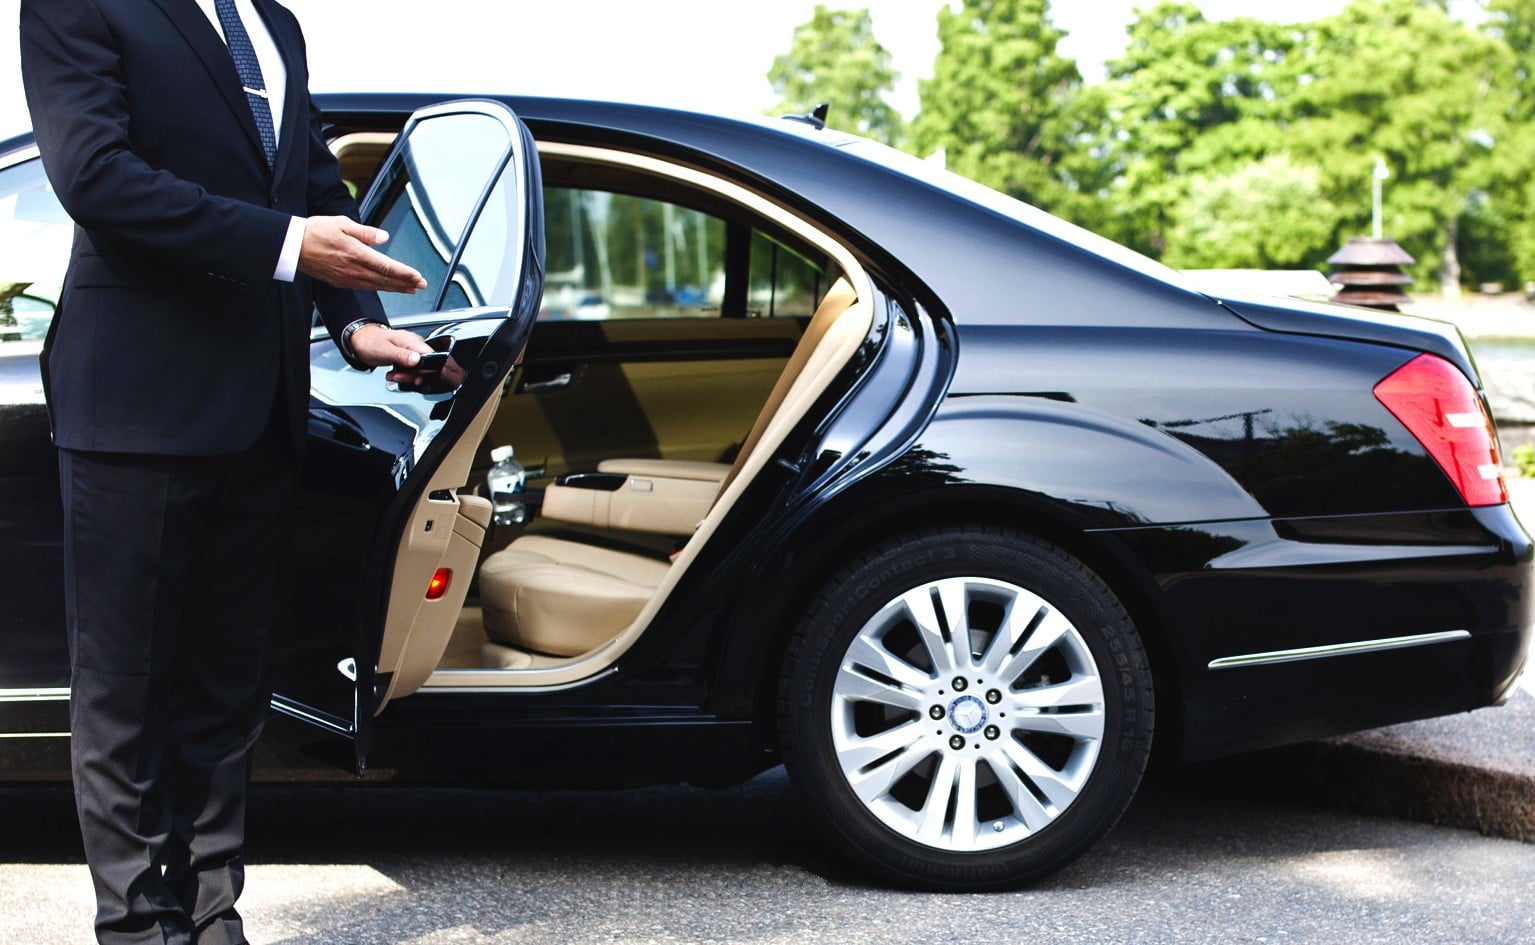 Special Insurance Solutions - For-Hire Transportation Insurance